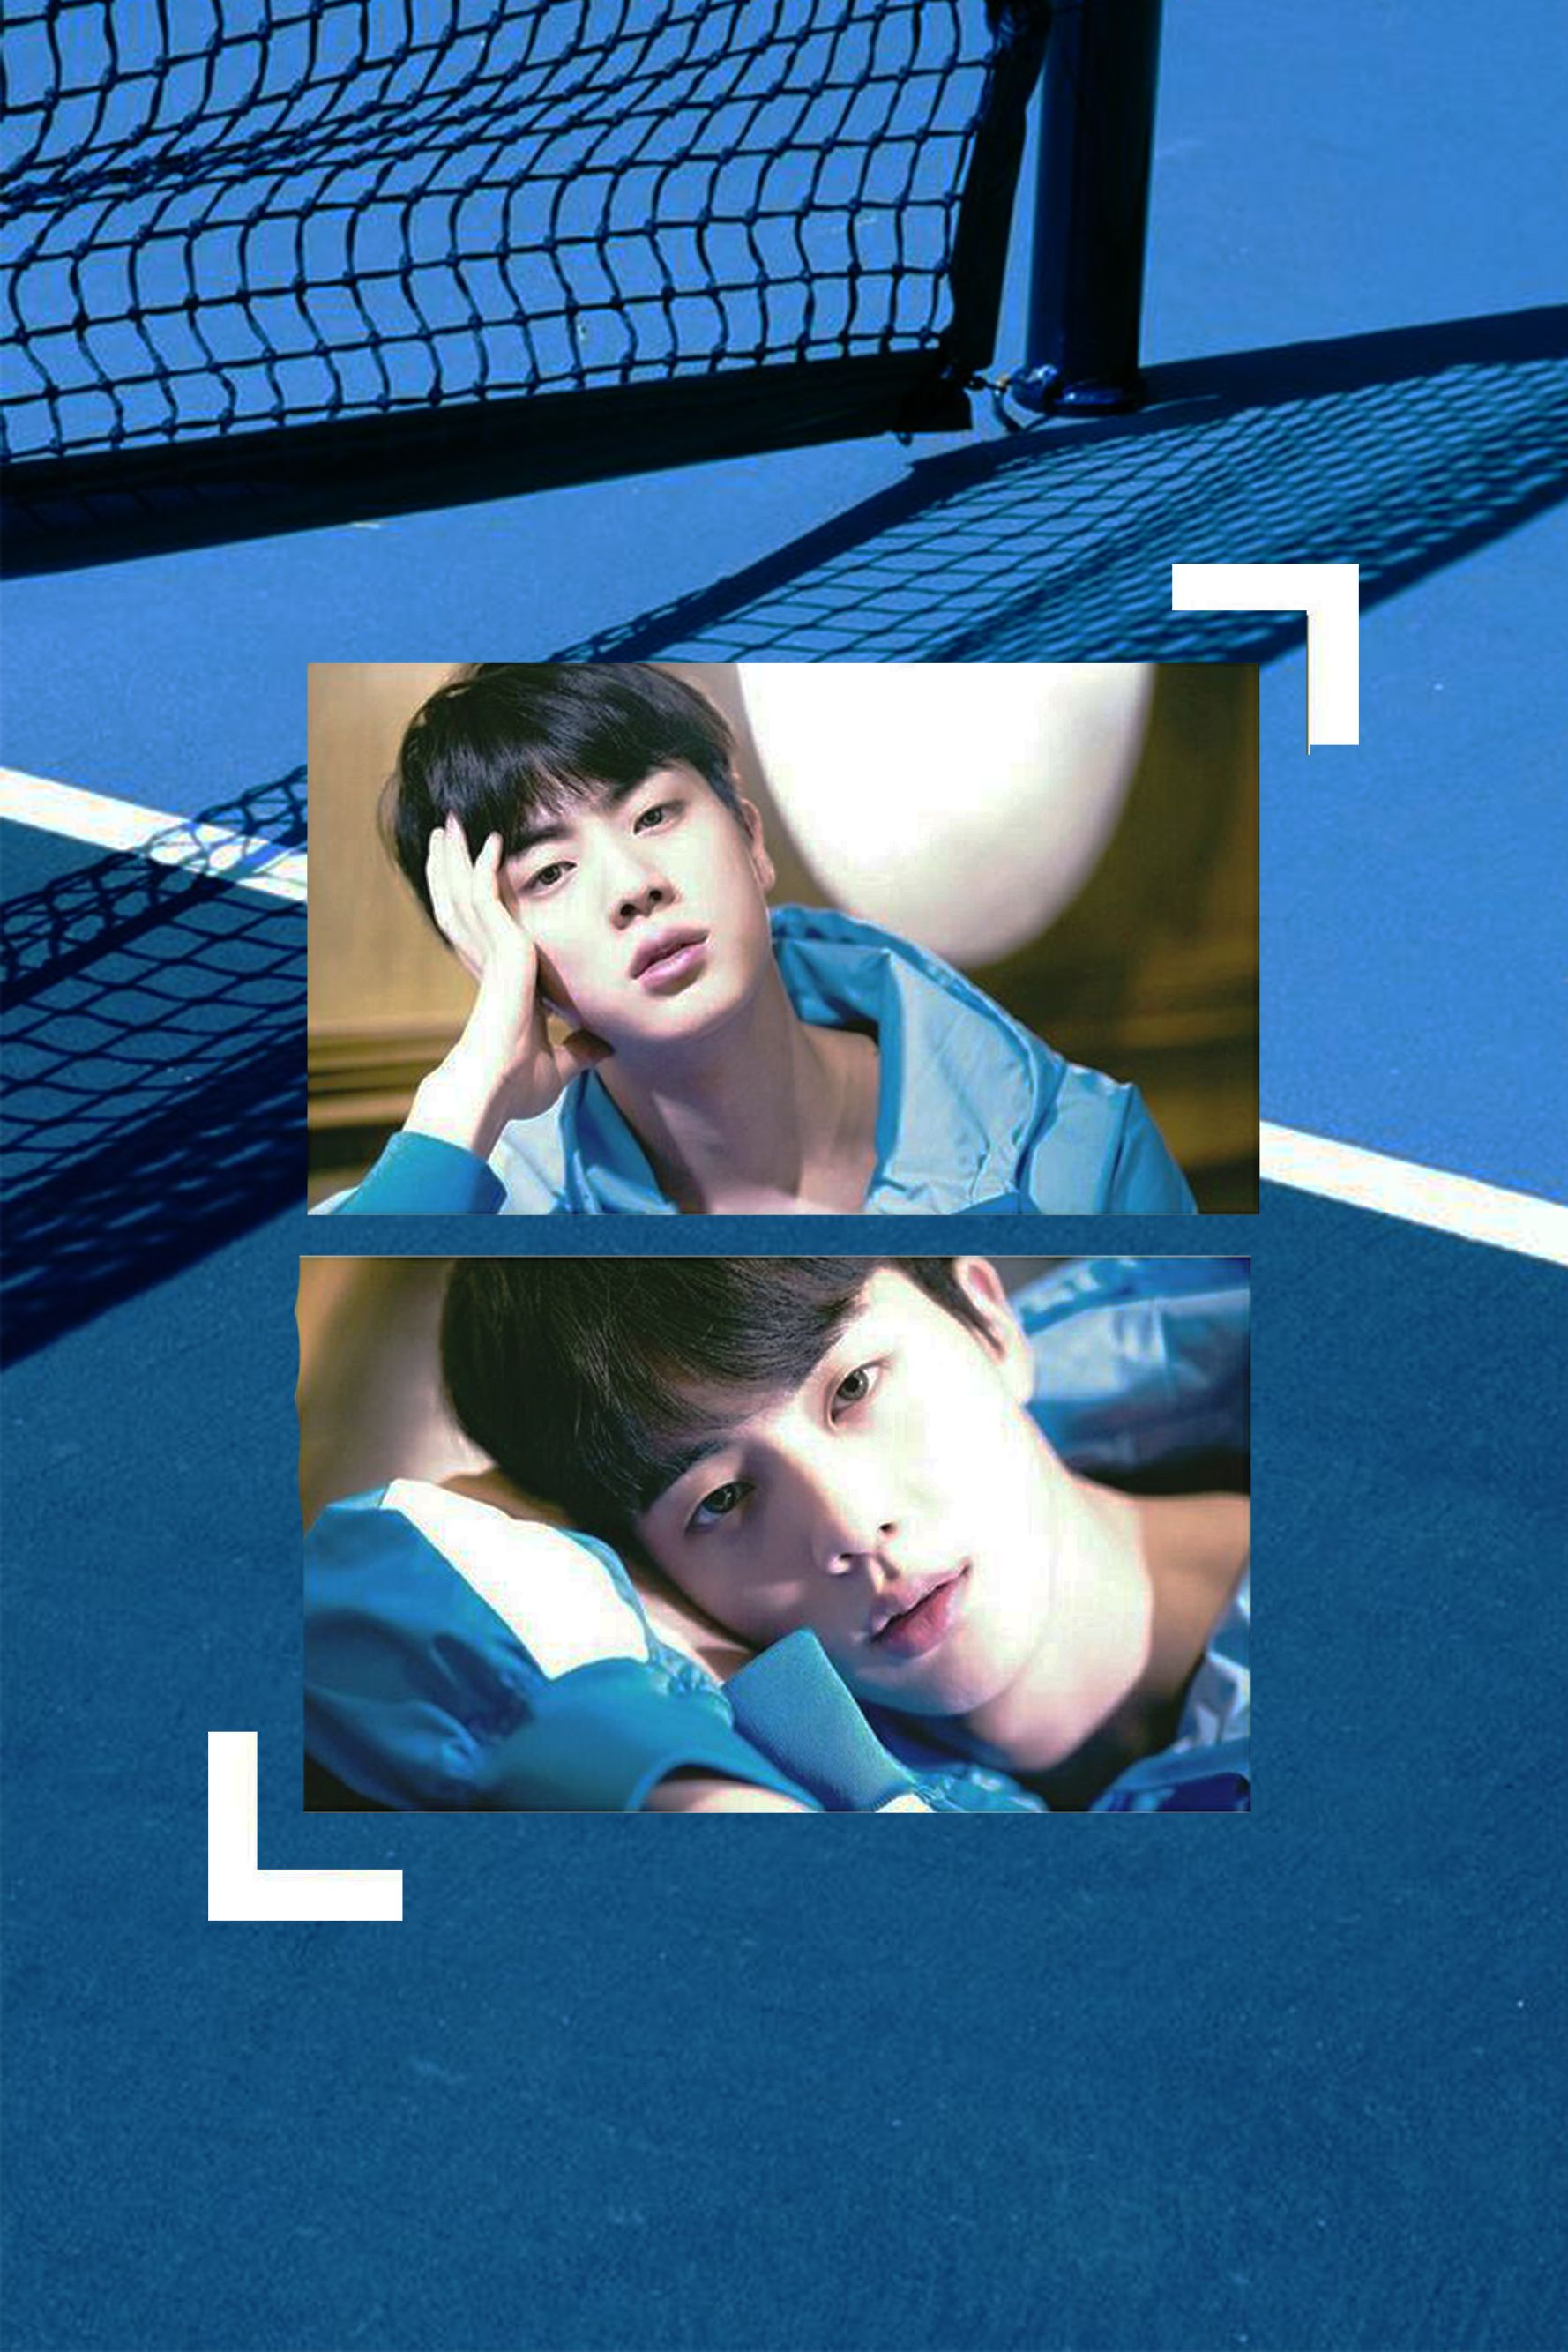 Kim Seokjin Blue Aesthetic Wallpaper Bts Jin Wallpaper I Forgot To Get The Owner Of The Bg Pic I Ll Look For It Again Bts